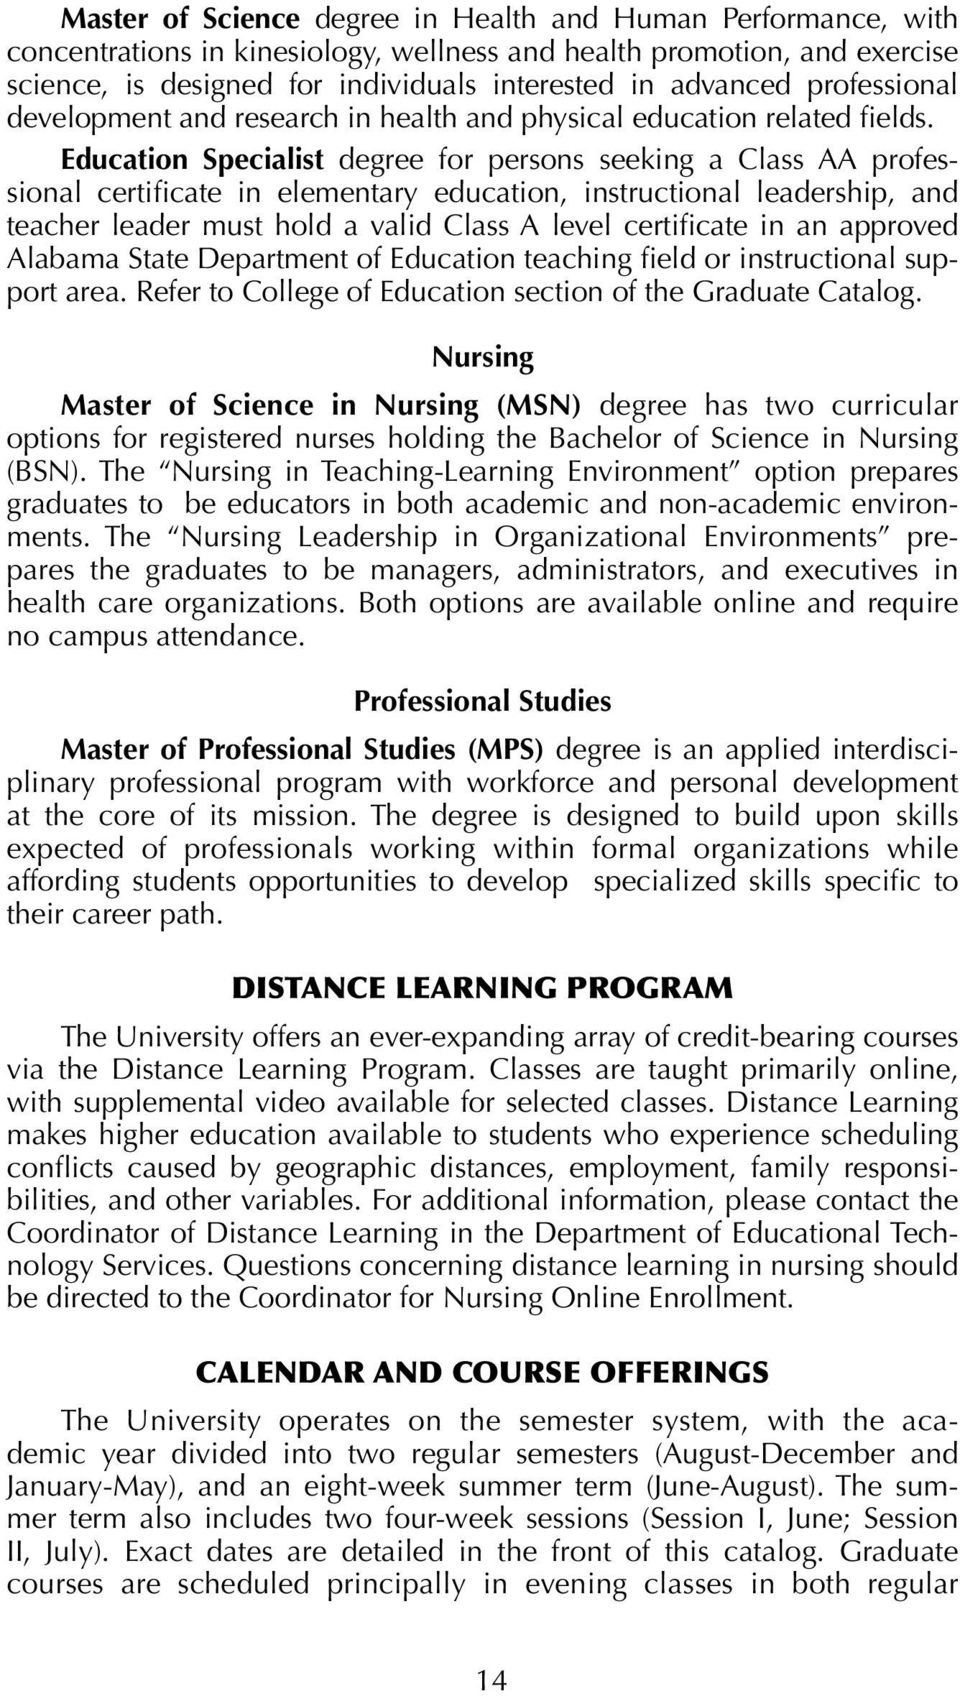 Education Specialist degree for persons seeking a Class AA professional certificate in elementary education, instructional leadership, and teacher leader must hold a valid Class A level certificate